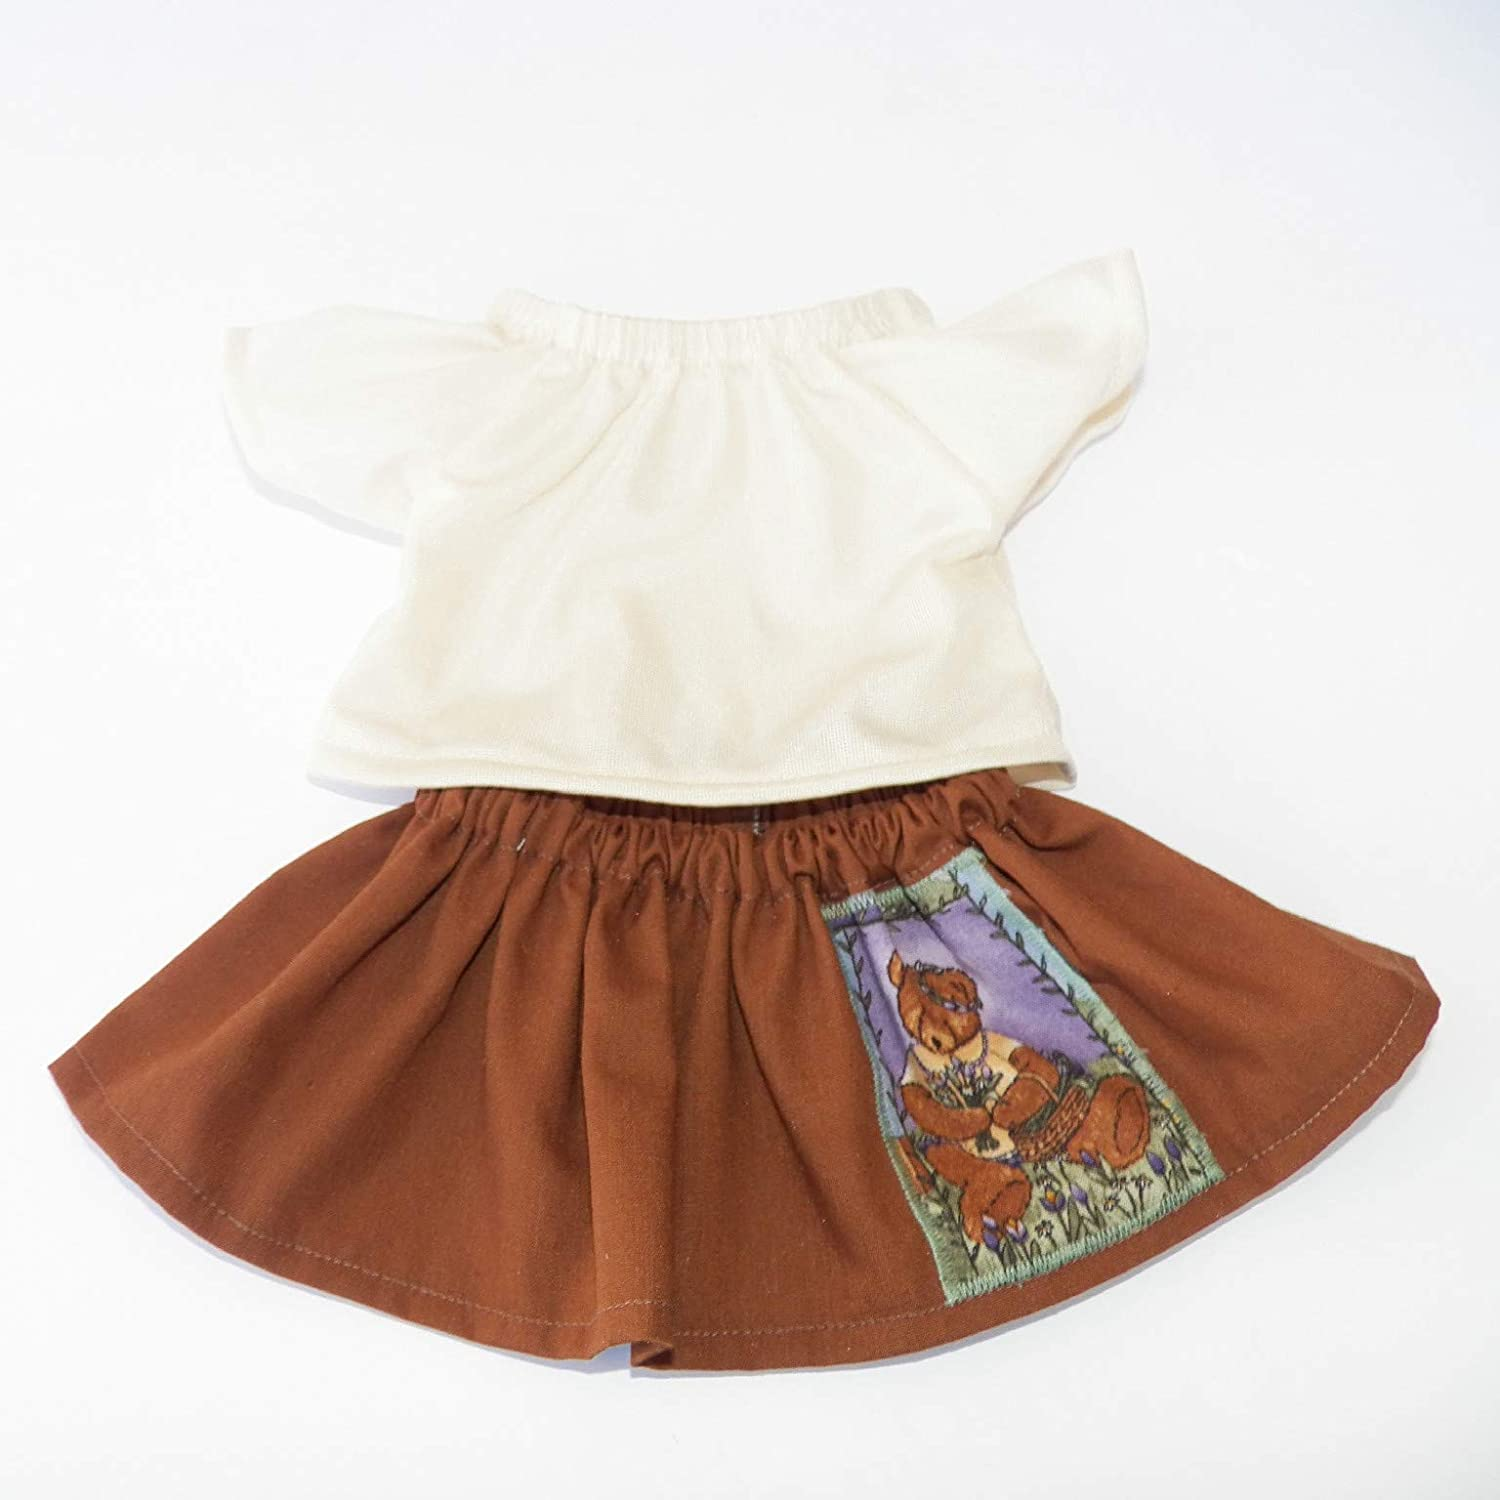 Cabbage Patch Doll Clothes Fits 16 Inch Girl Includes One Brown Appliqued Bear Skirt and One T Shirt No Doll